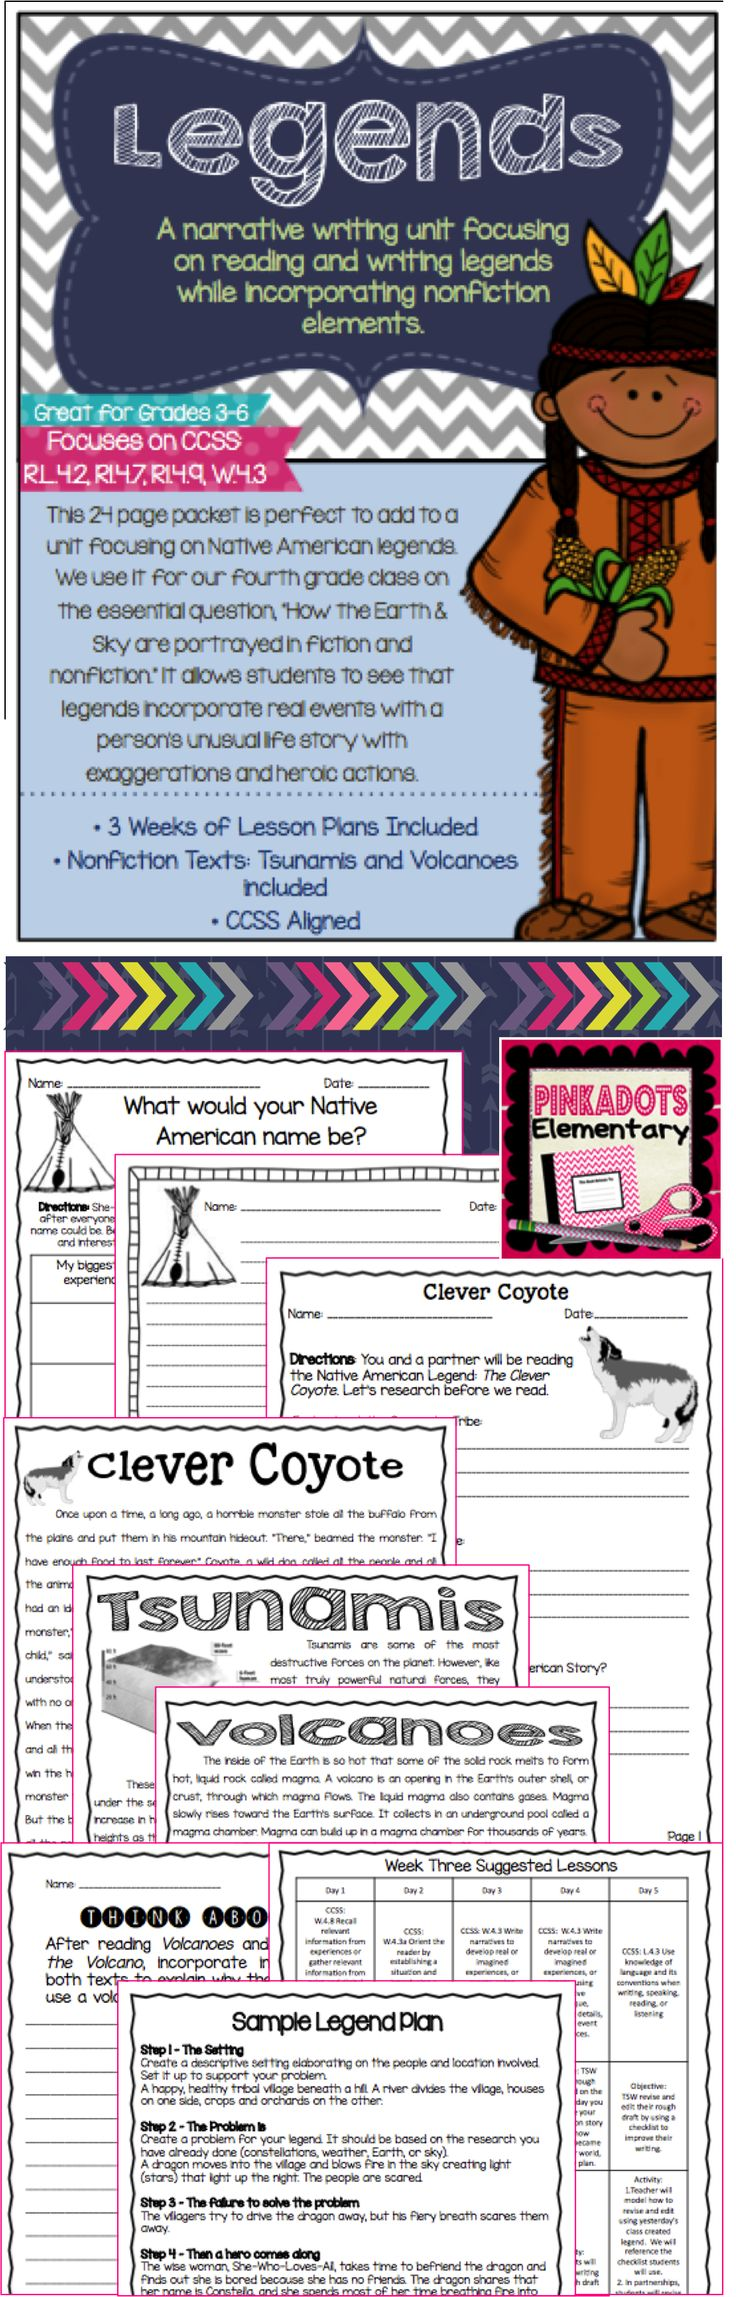 Worksheets American Literature Worksheets best 25 native american literature ideas on pinterest legendsresourcesideasactivities to help with legend writing